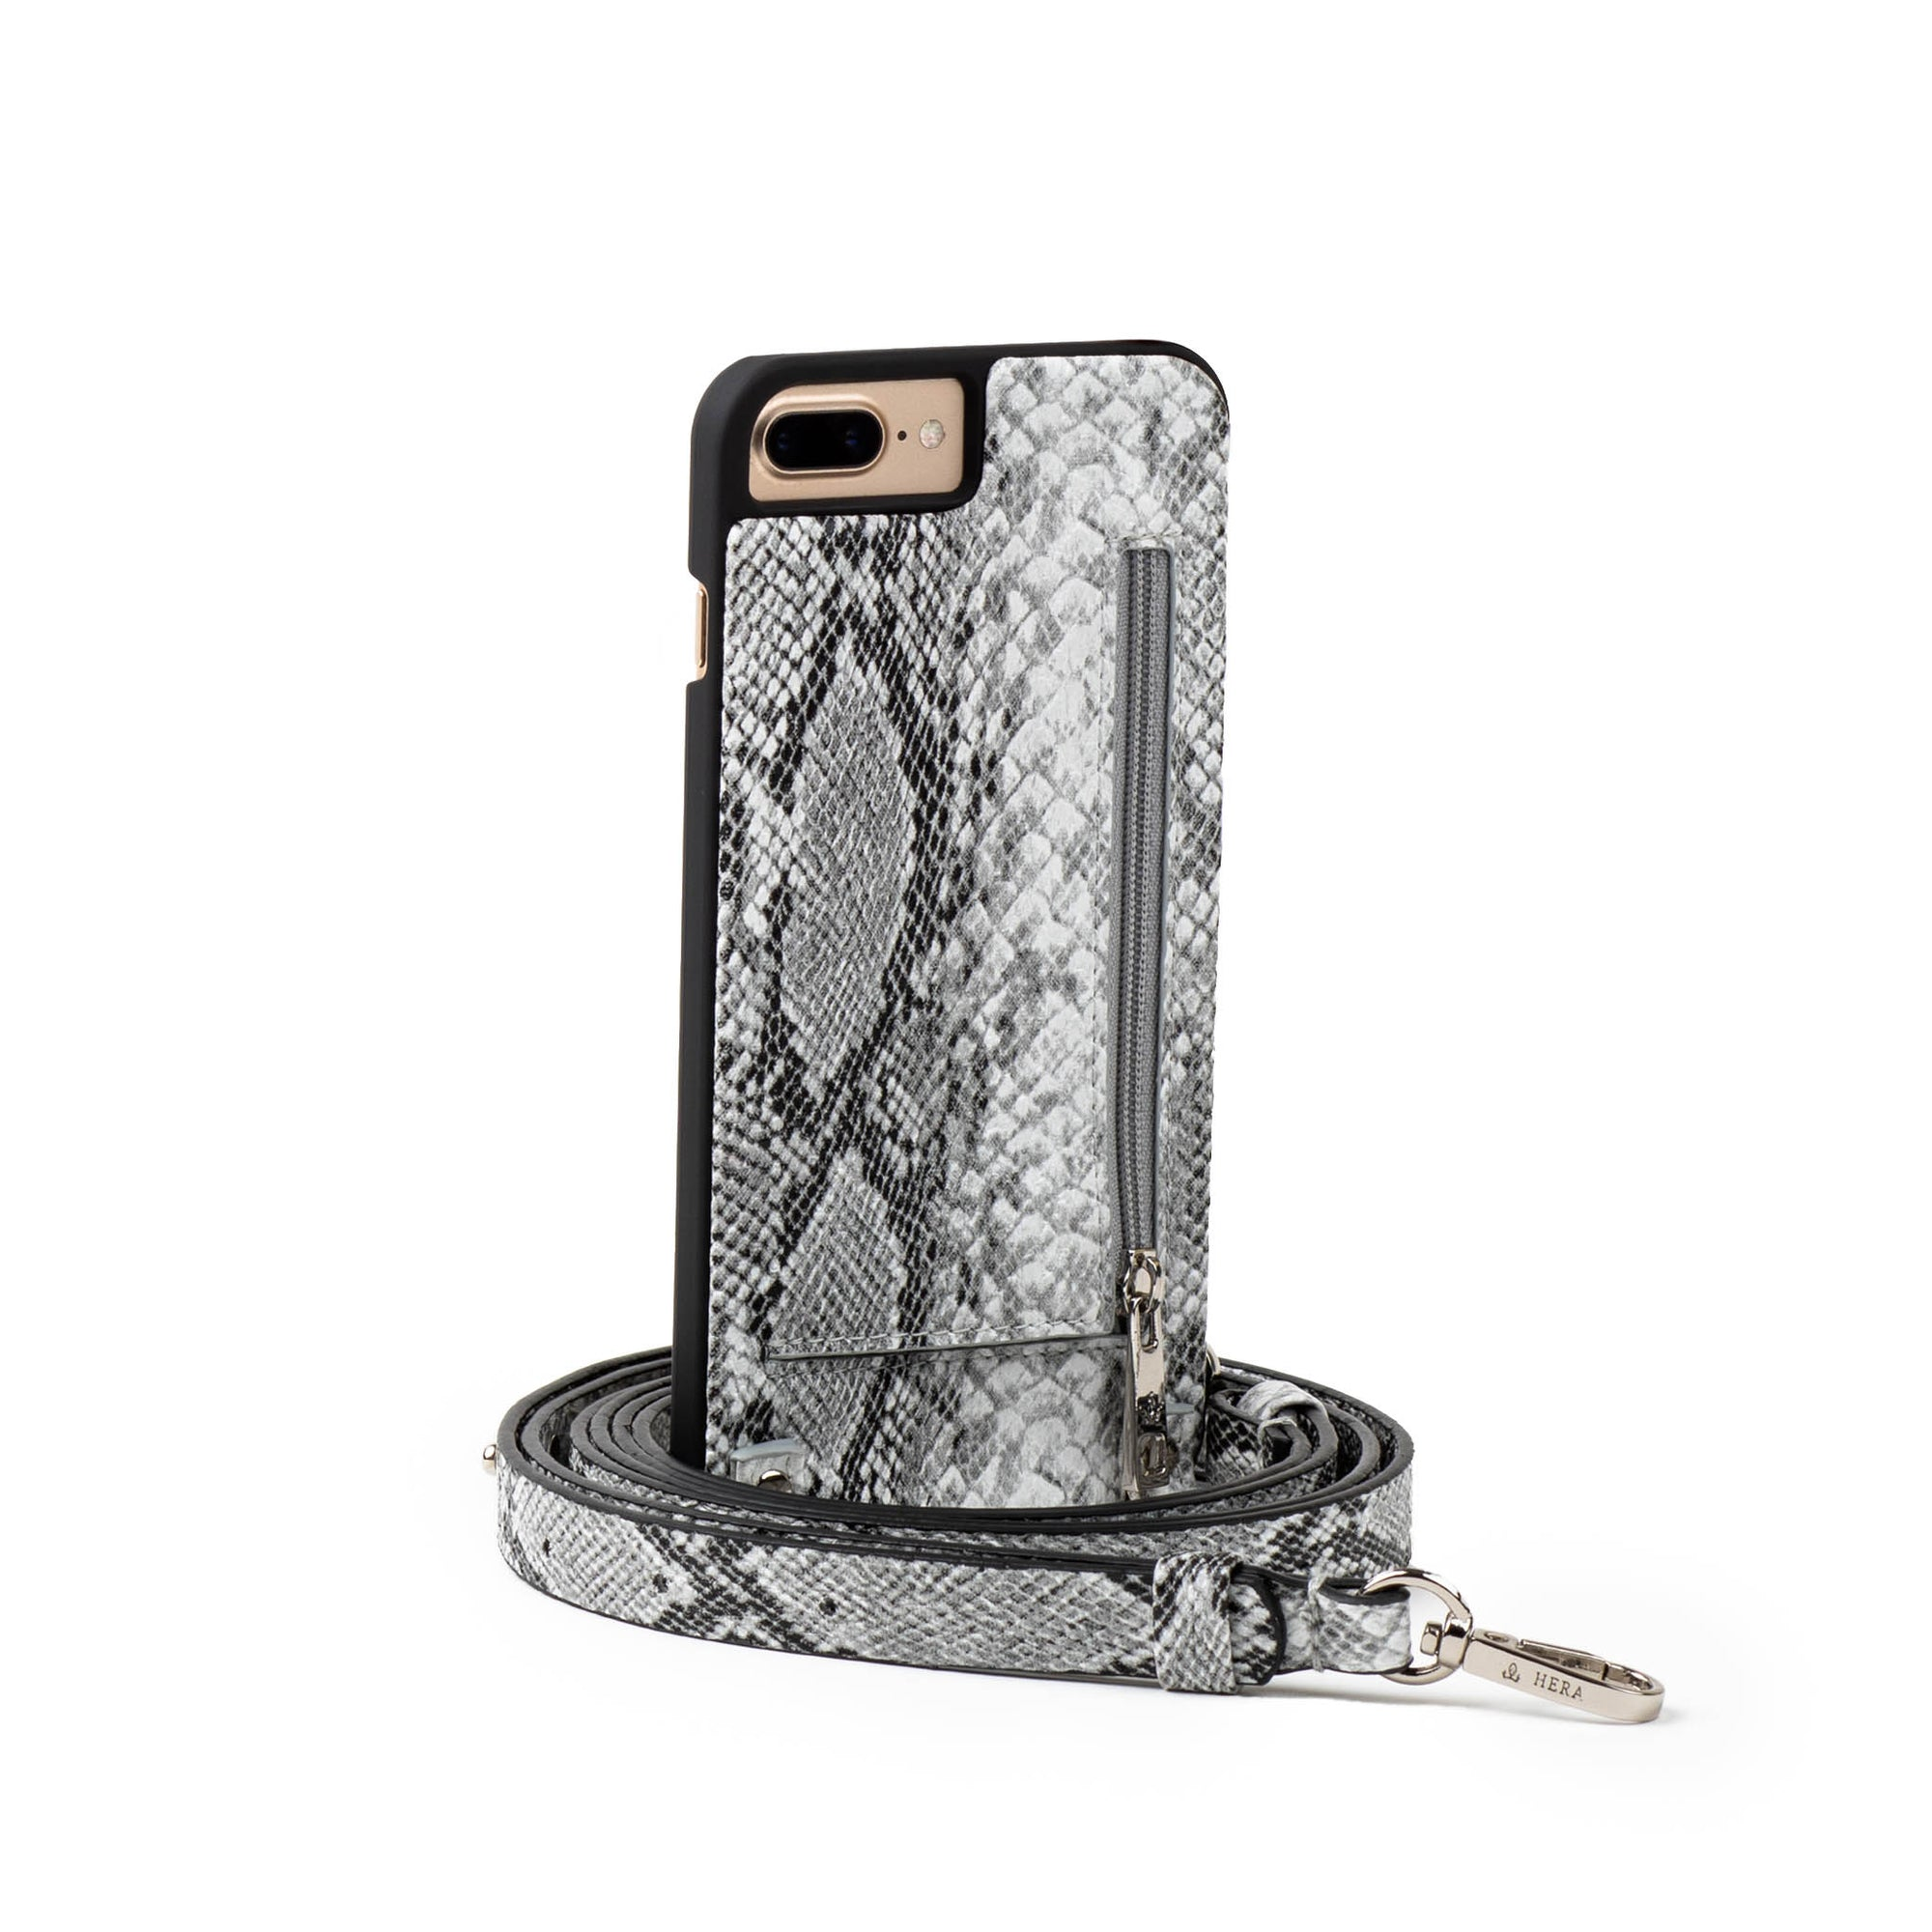 Storm - Crossbody Cell Phone Case for iPhone 6+ / 6S+ / 7+ / 8+ (PLUS)